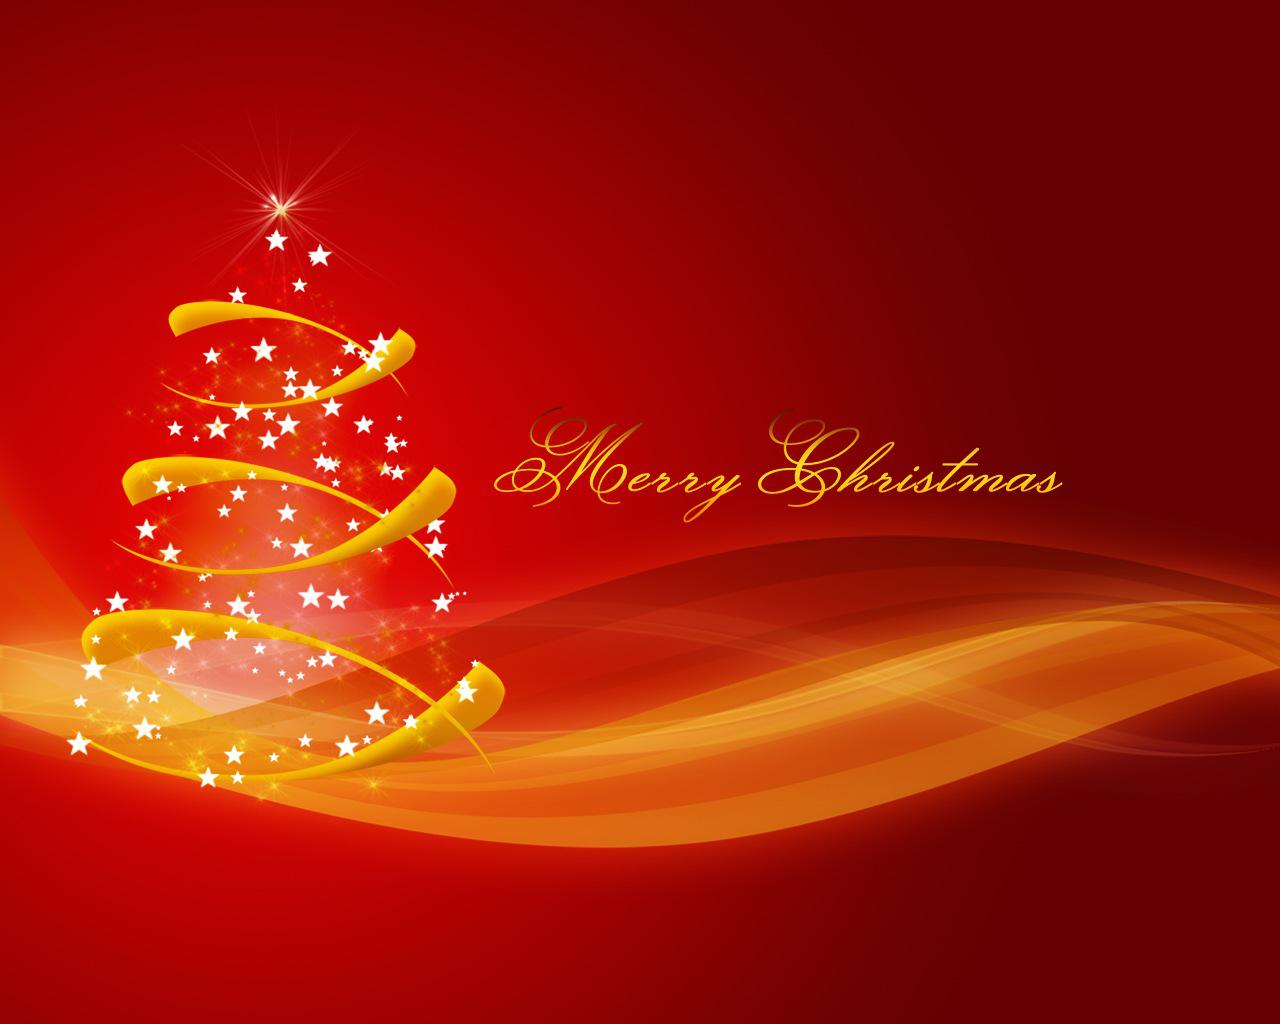 wallpaper christmas wallpapers - photo #24